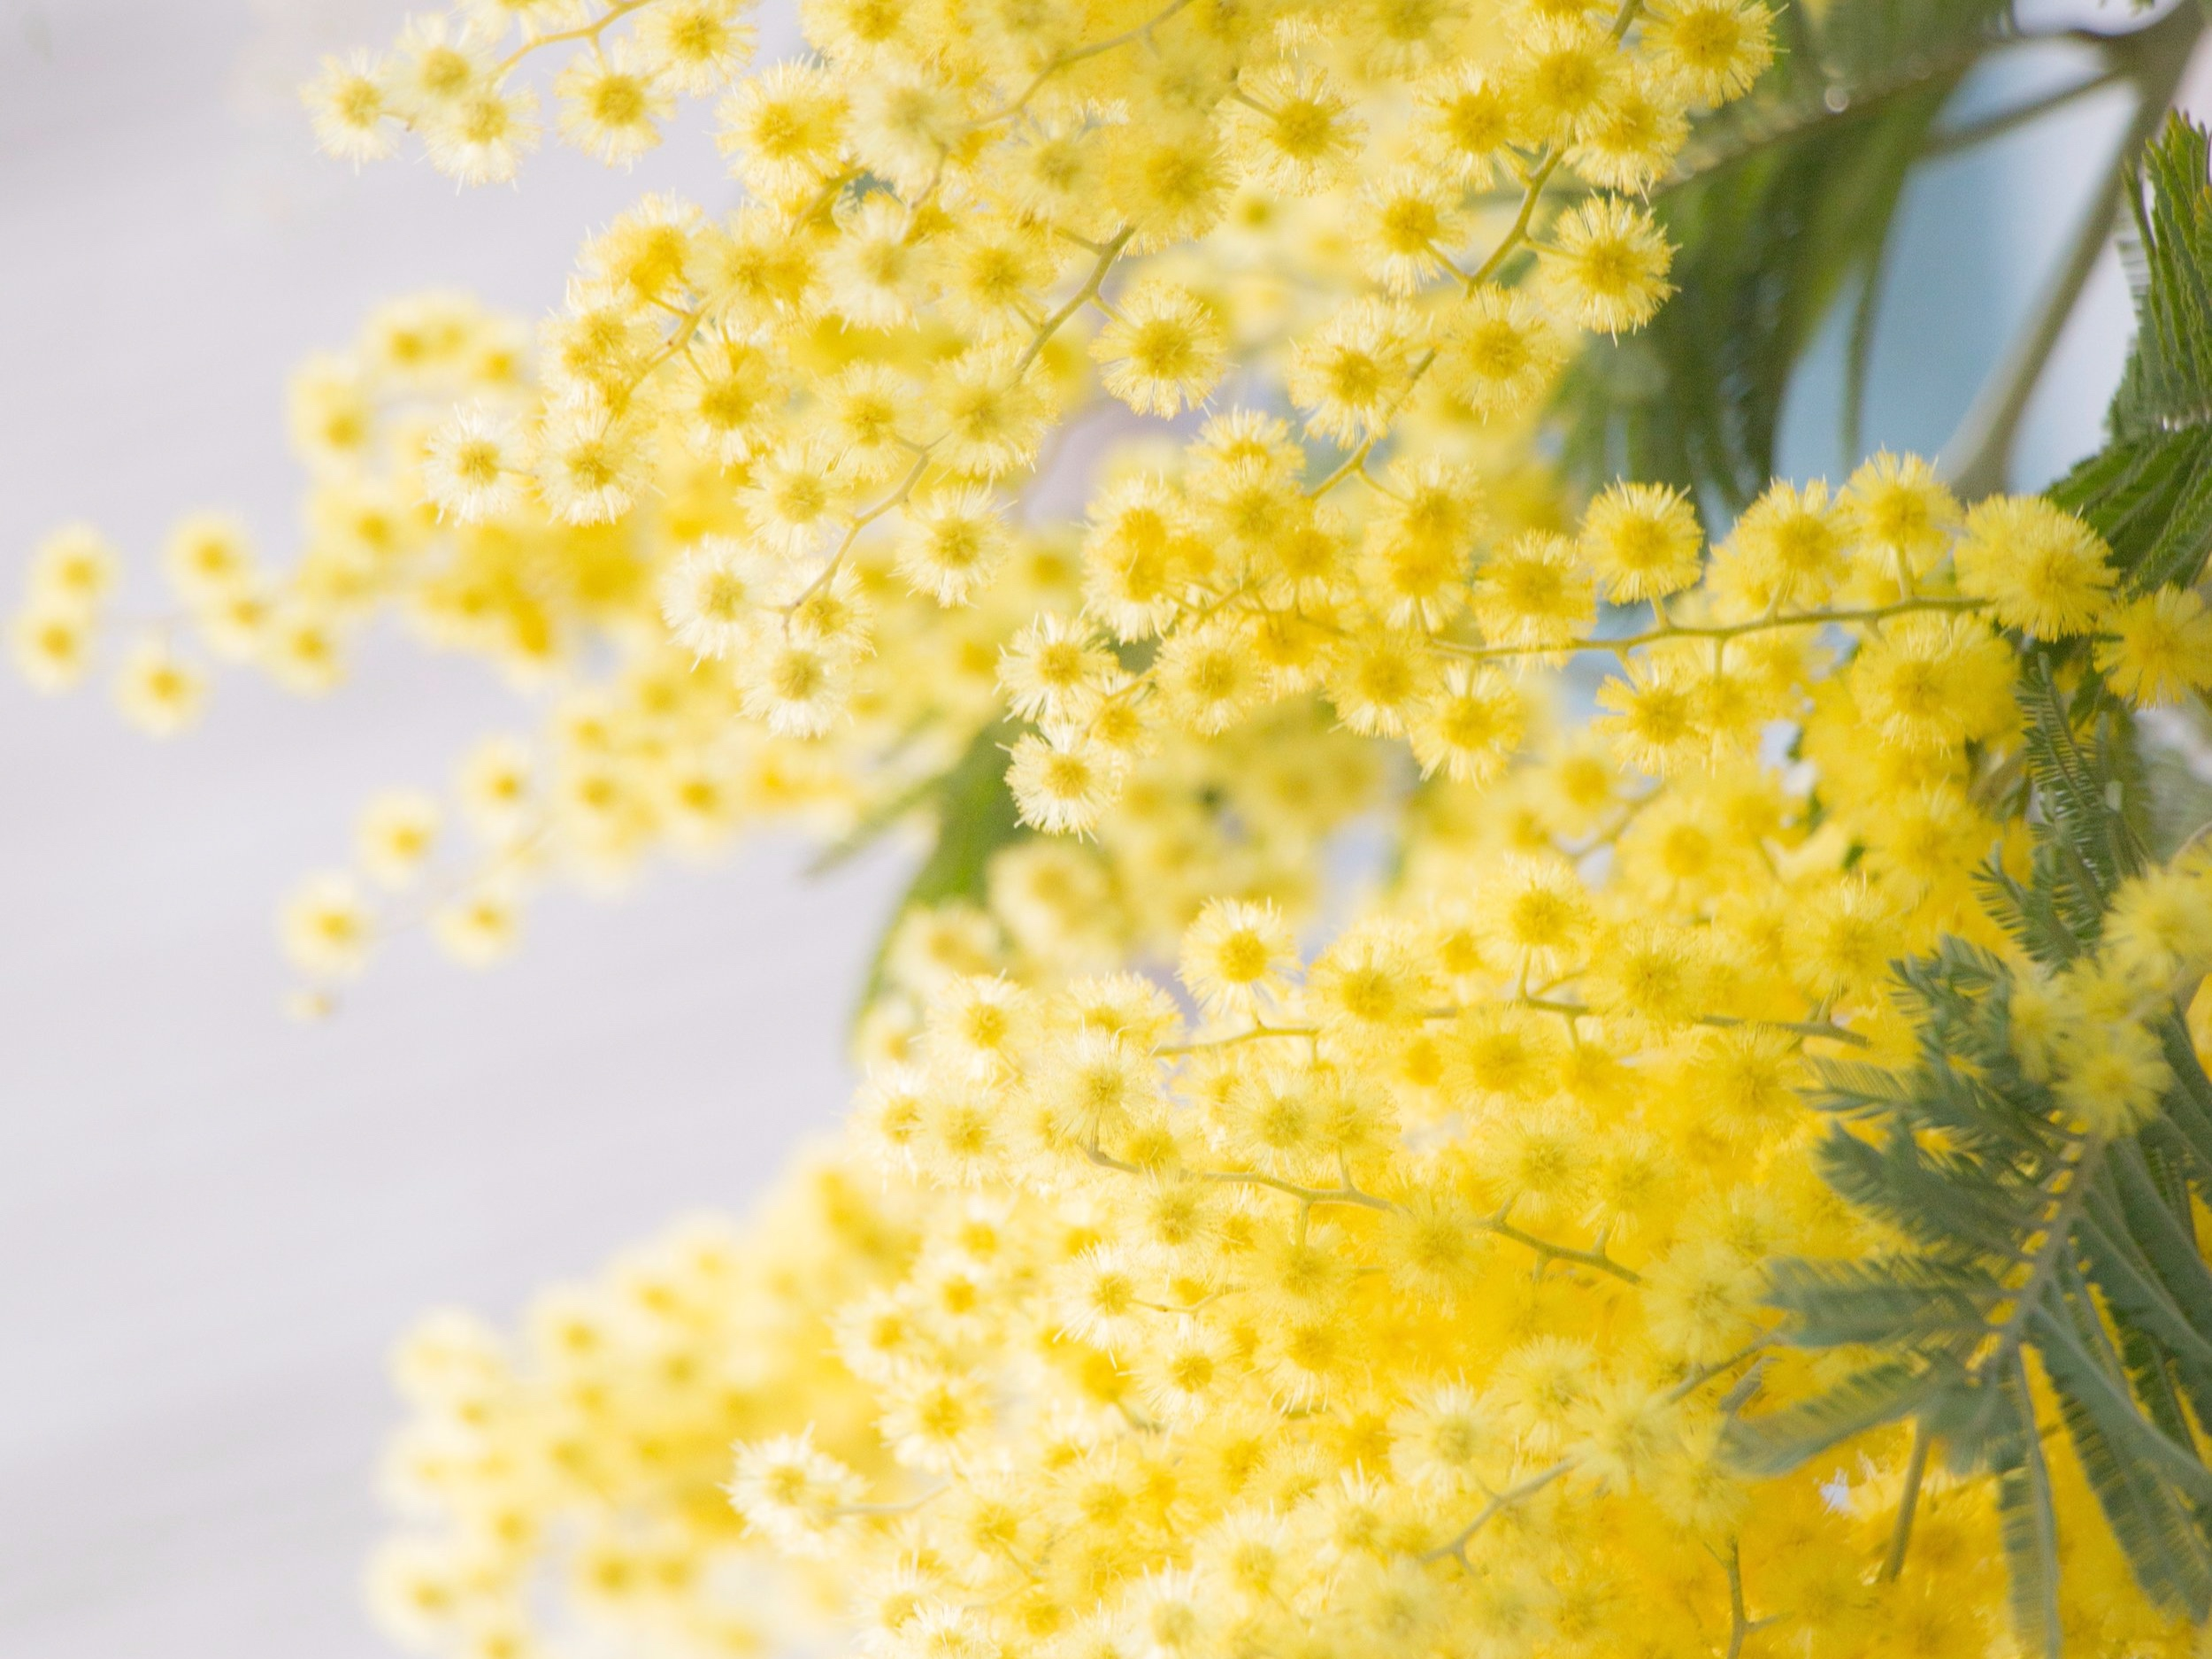 The mimosa blossom - In Italy IWD is more commonly known as  la Festa della Donna , and the importance of women is celebrated by the giving and receiving of yellow mimosa blossom.